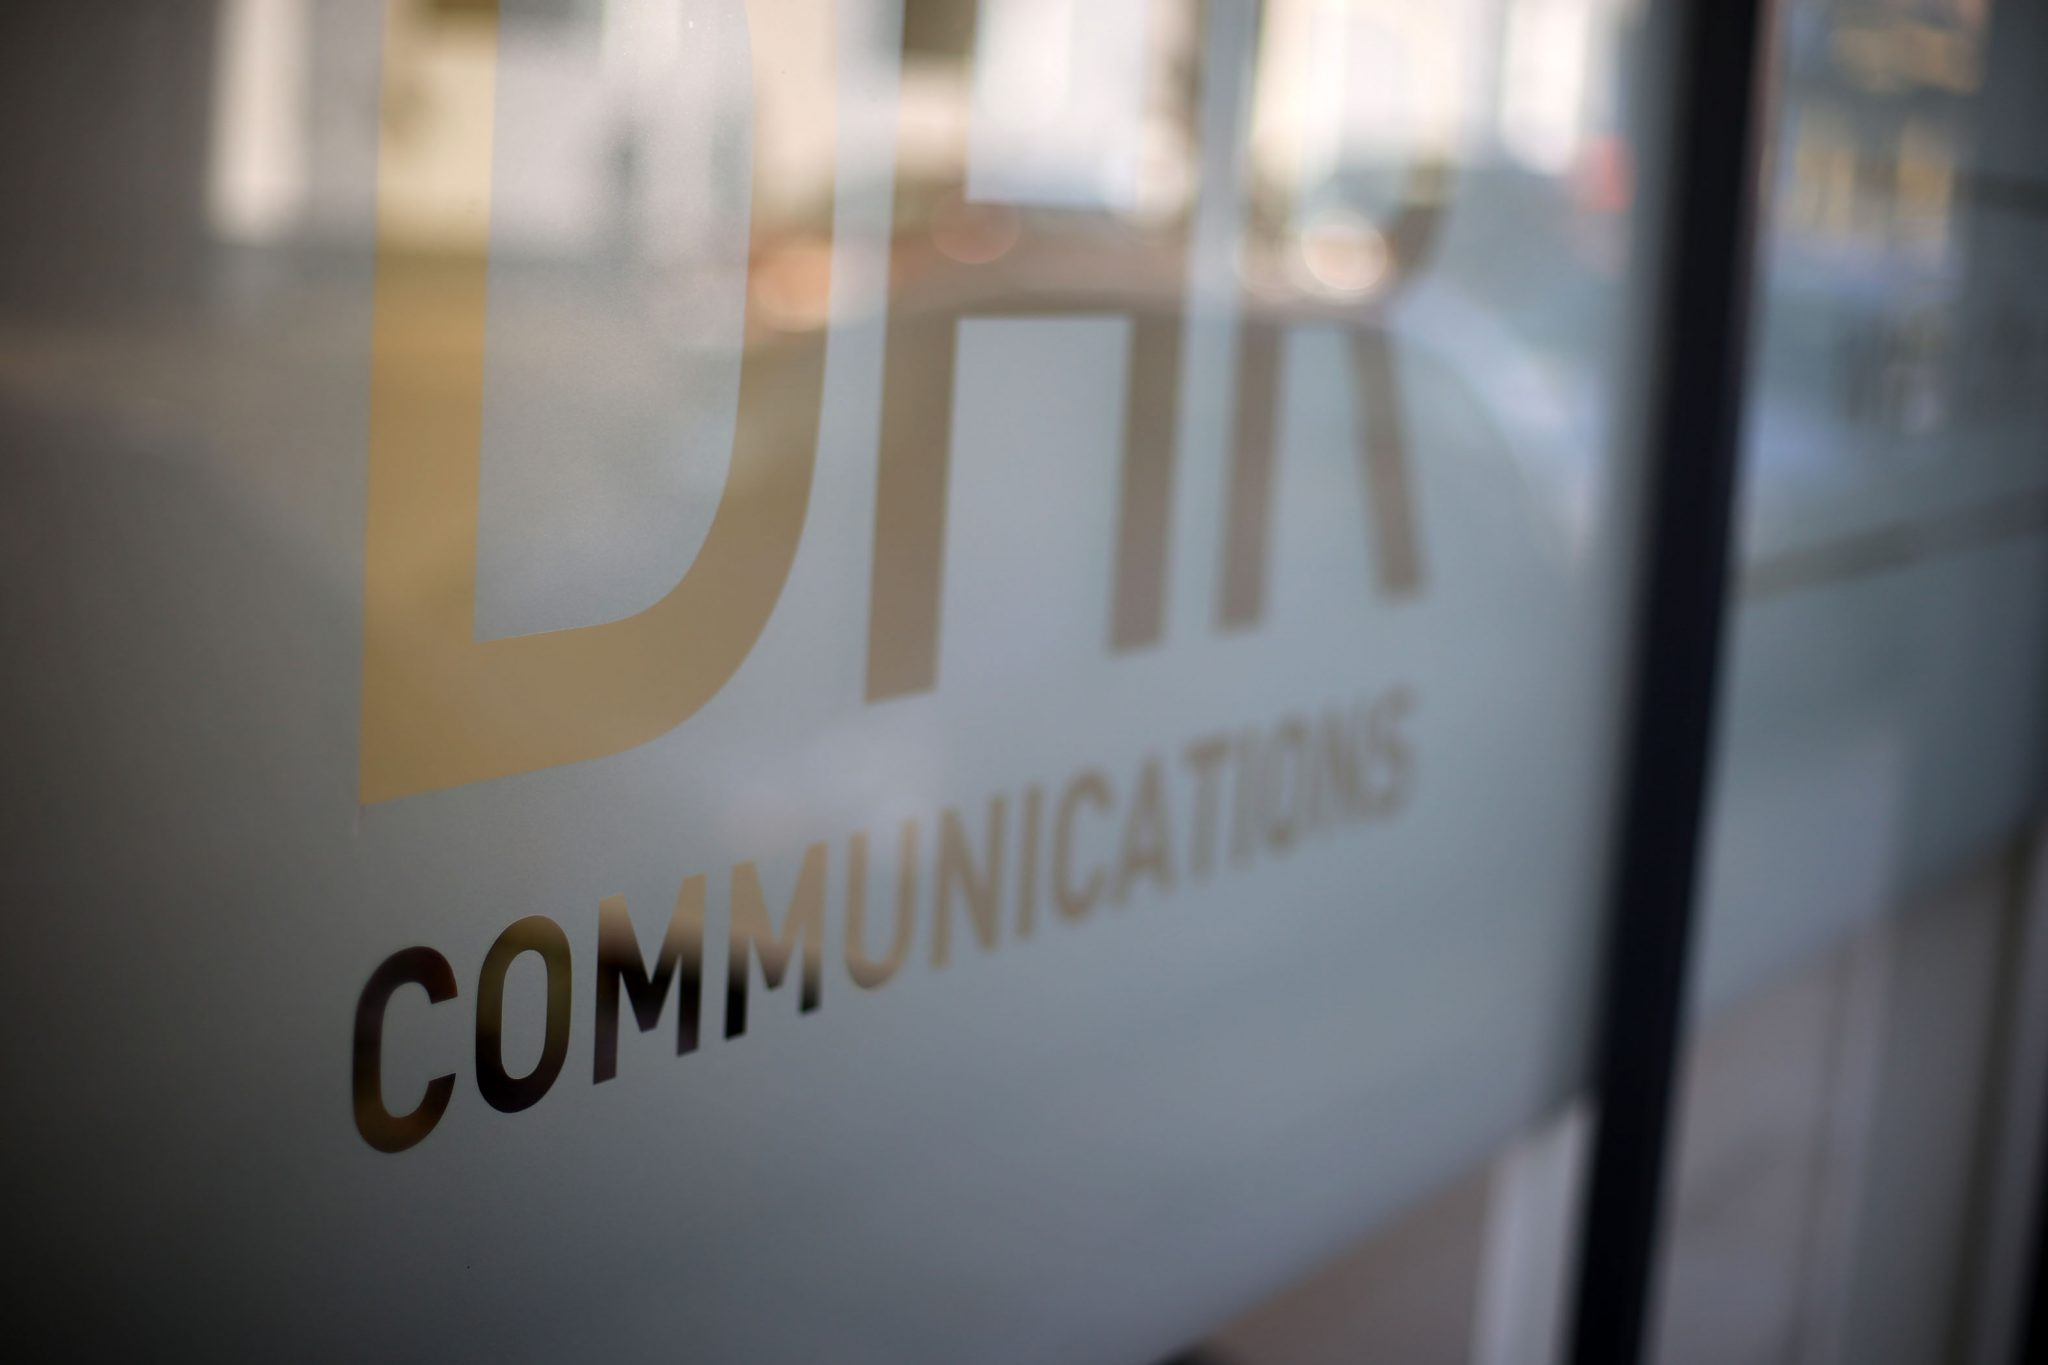 DHR Communications